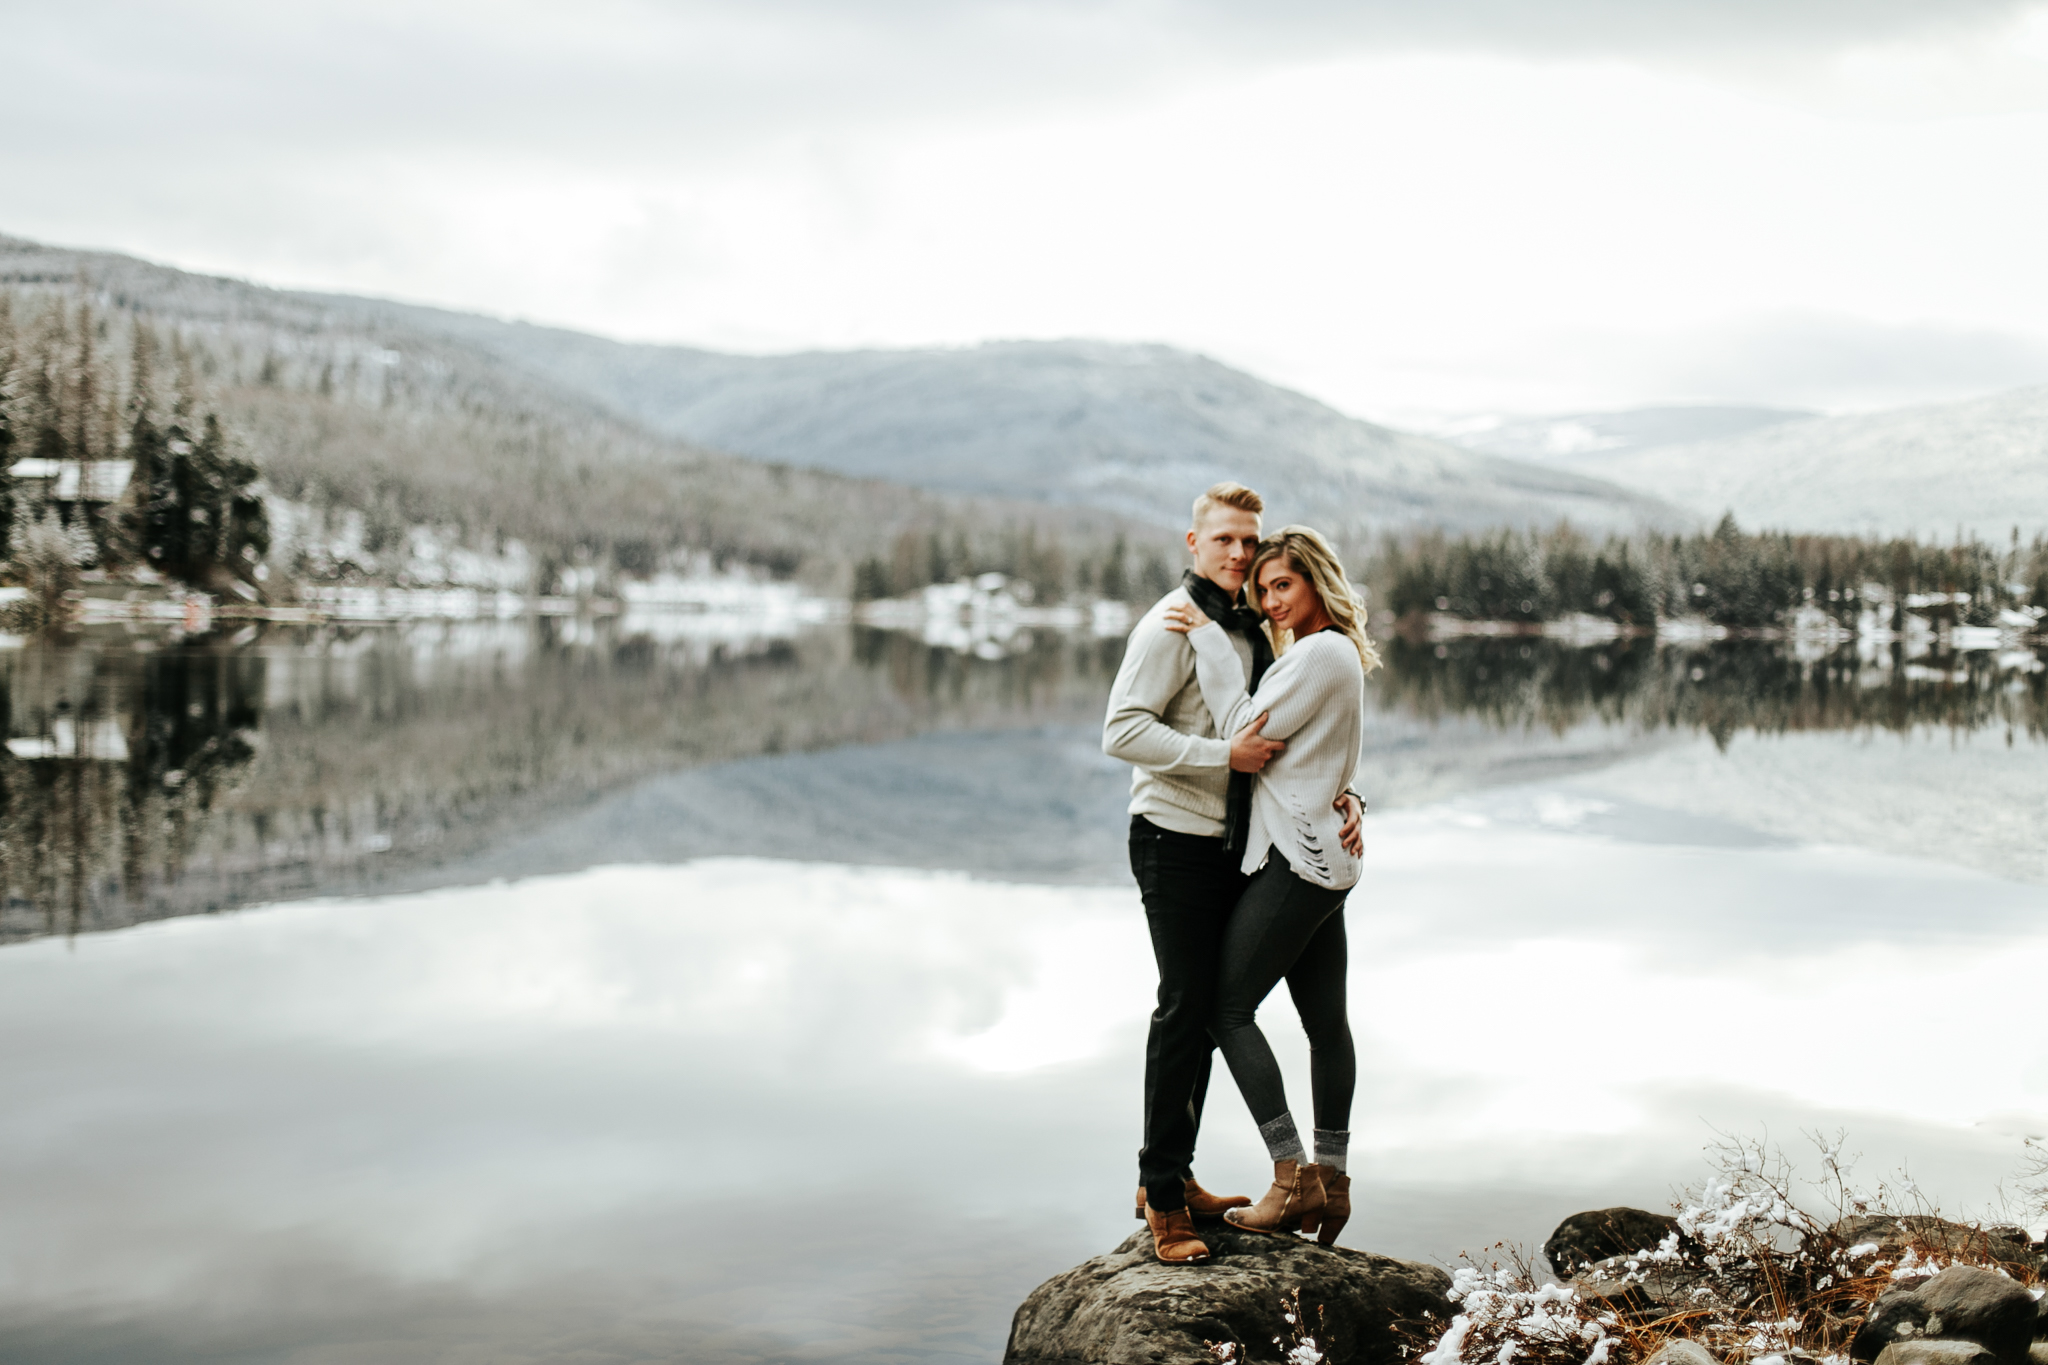 love-and-be-loved-photography-mountain-engagement-ashlyn-rob-perfect-fit-4-u-photo-image-picture-26.jpg